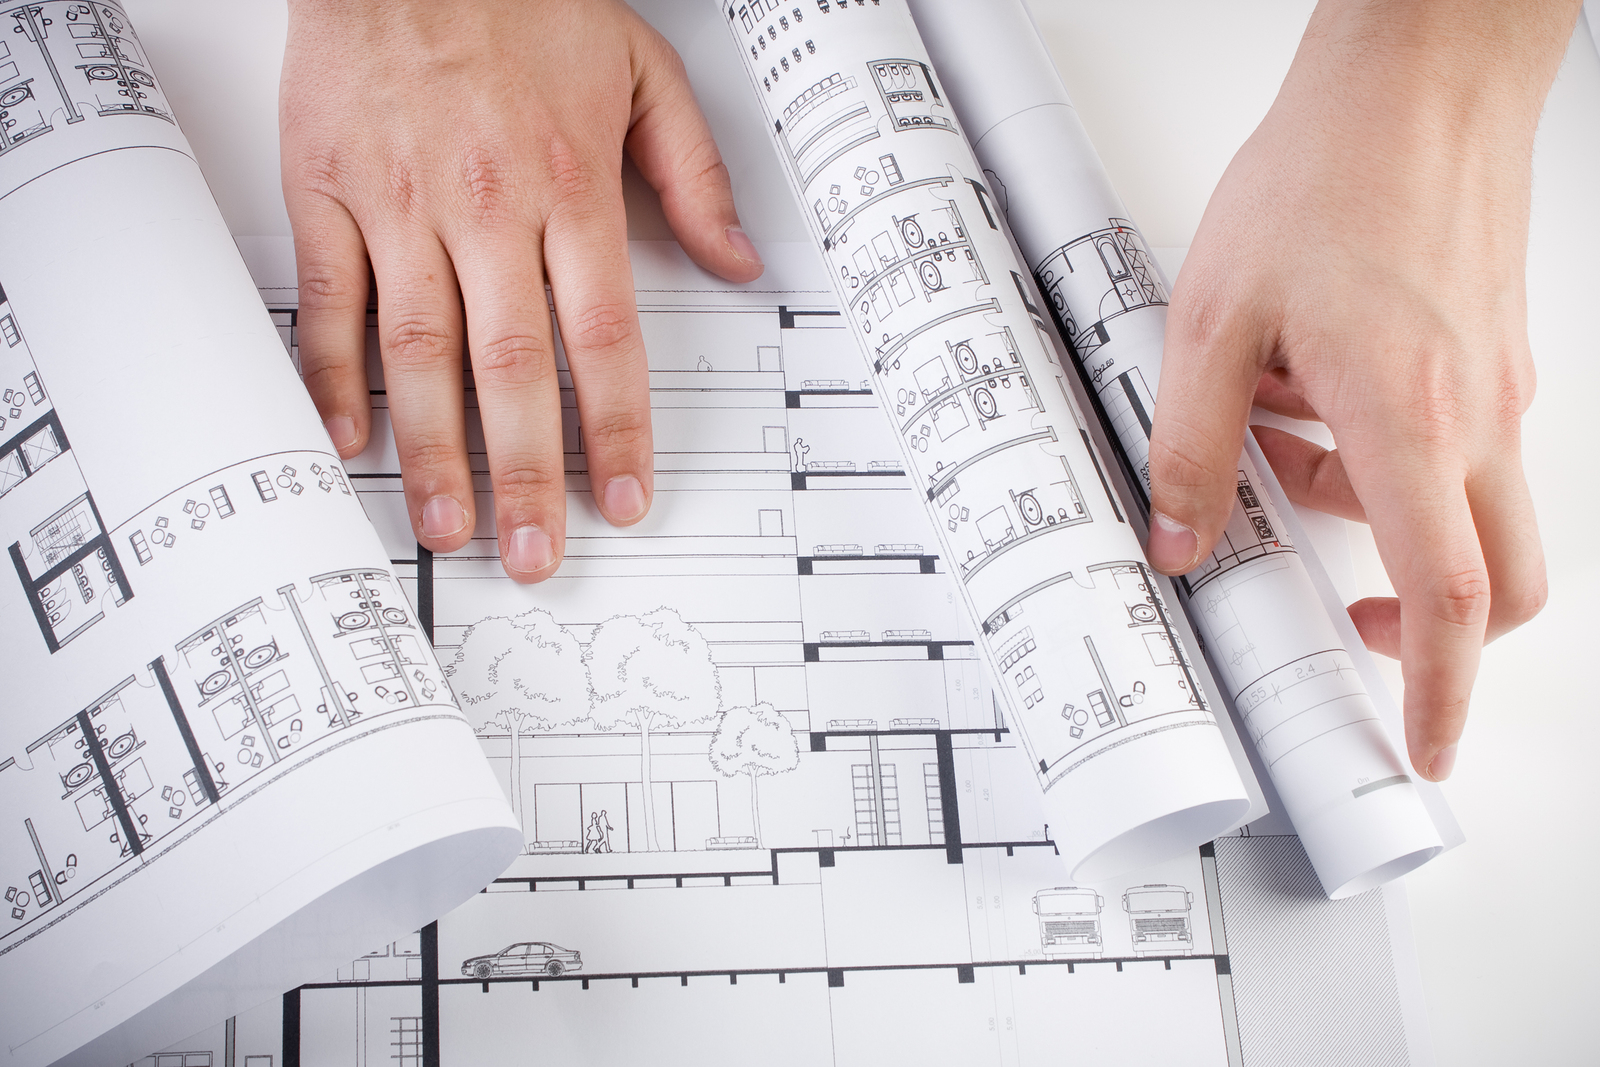 How to read plans and blueprints pro construction guide how to read plans and blueprints malvernweather Images